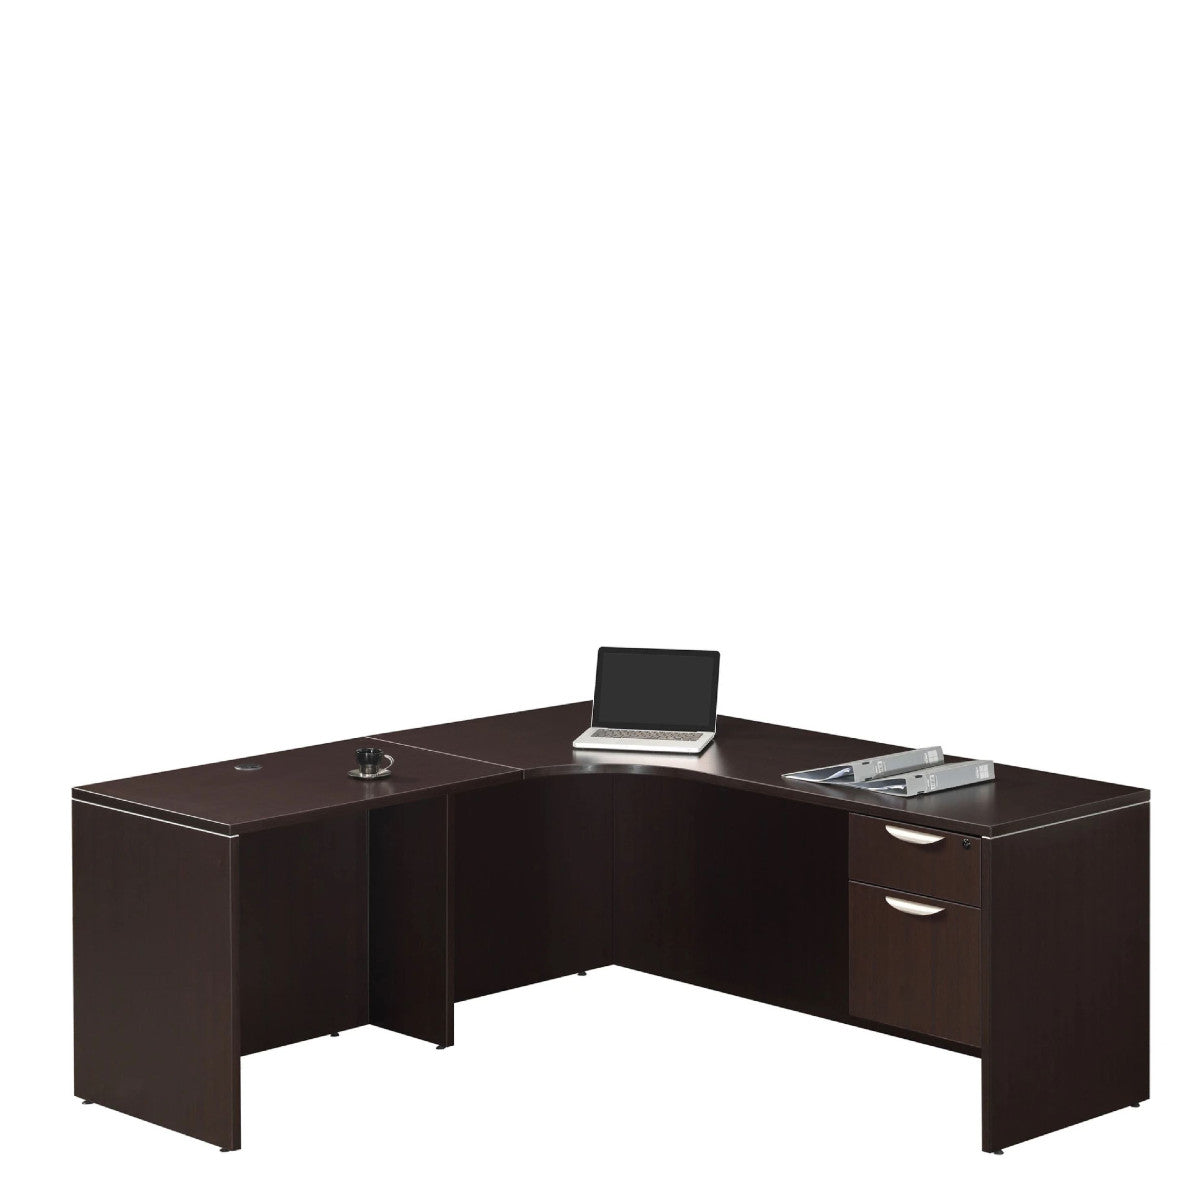 Performance - Corner L Desk with Inner Curve 6' X 6' - Duckys Office Furniture